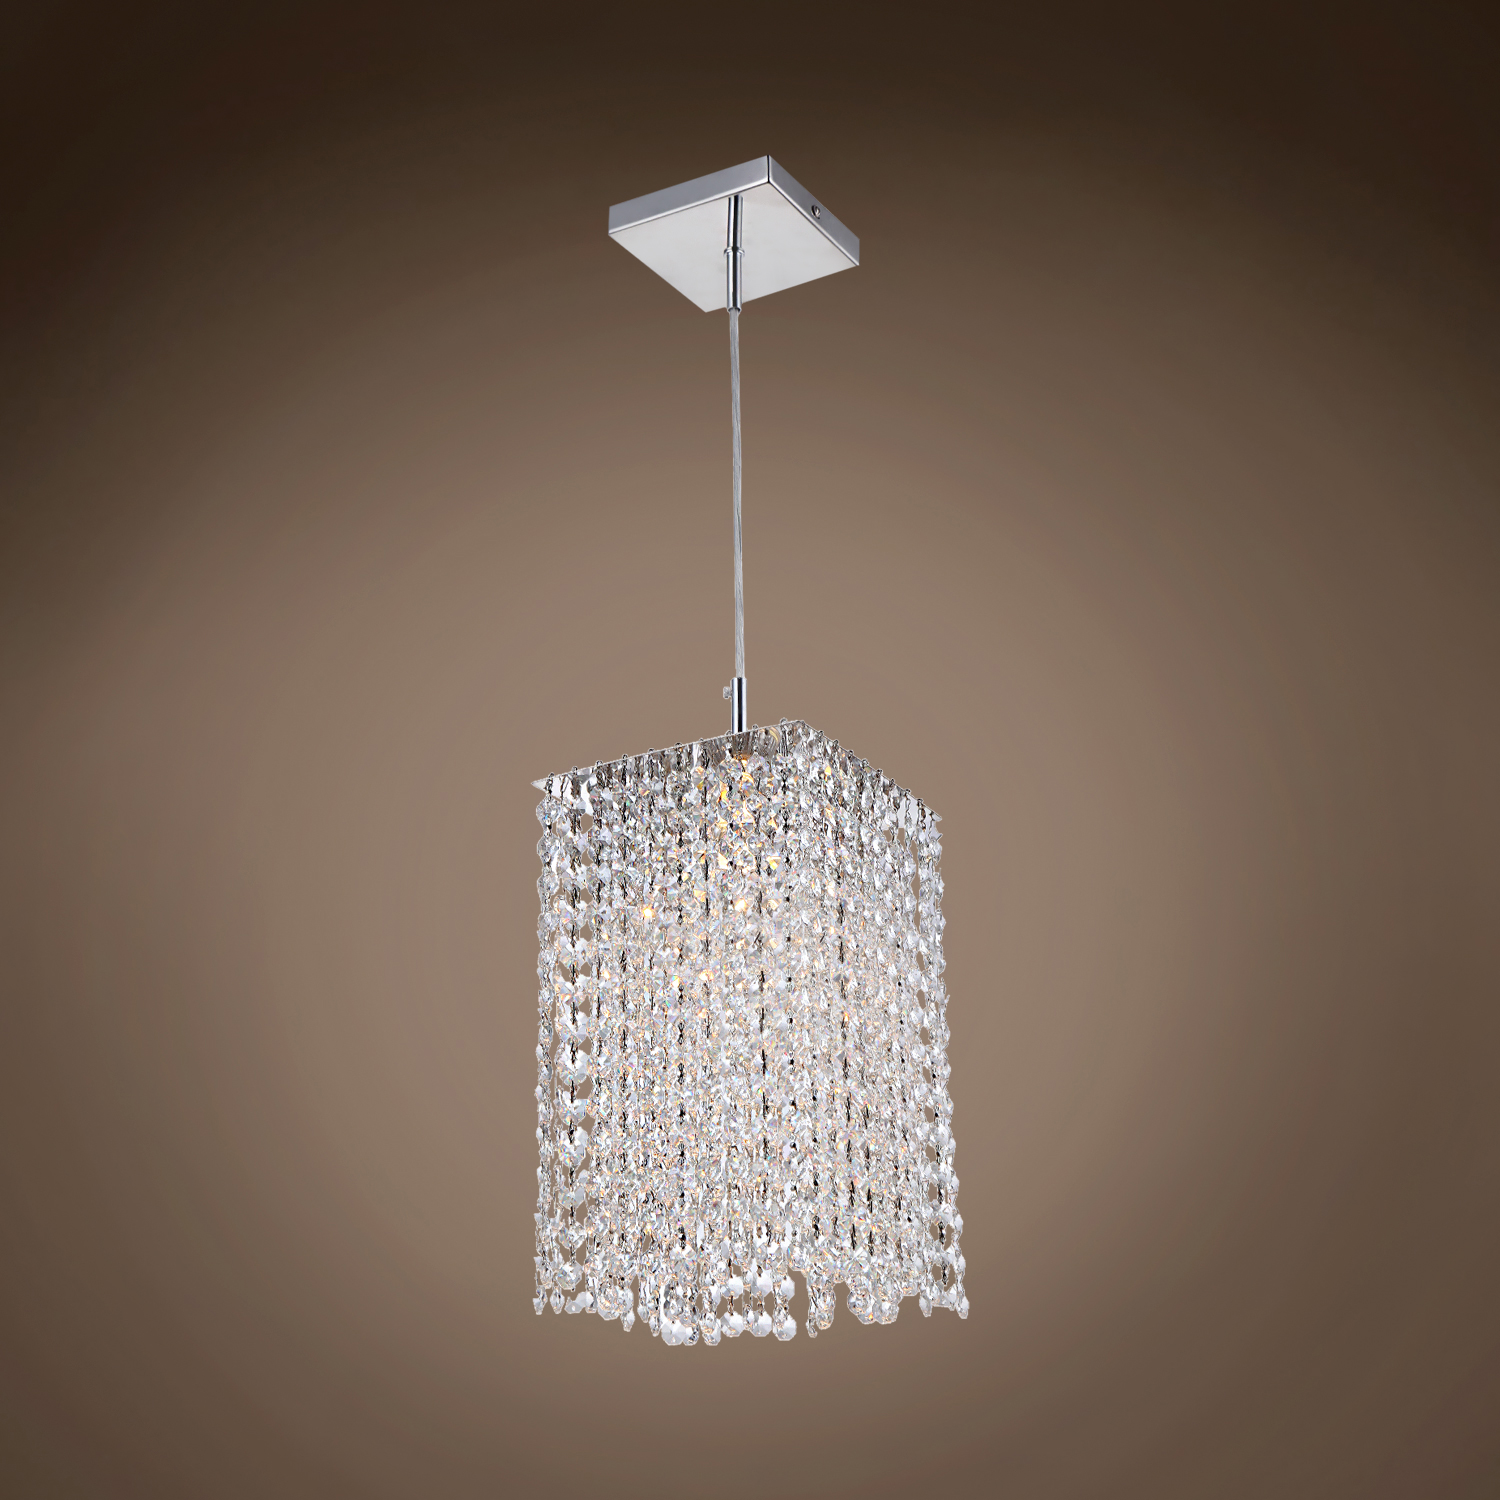 light square shape crystal mini pendant light in chrome finish with